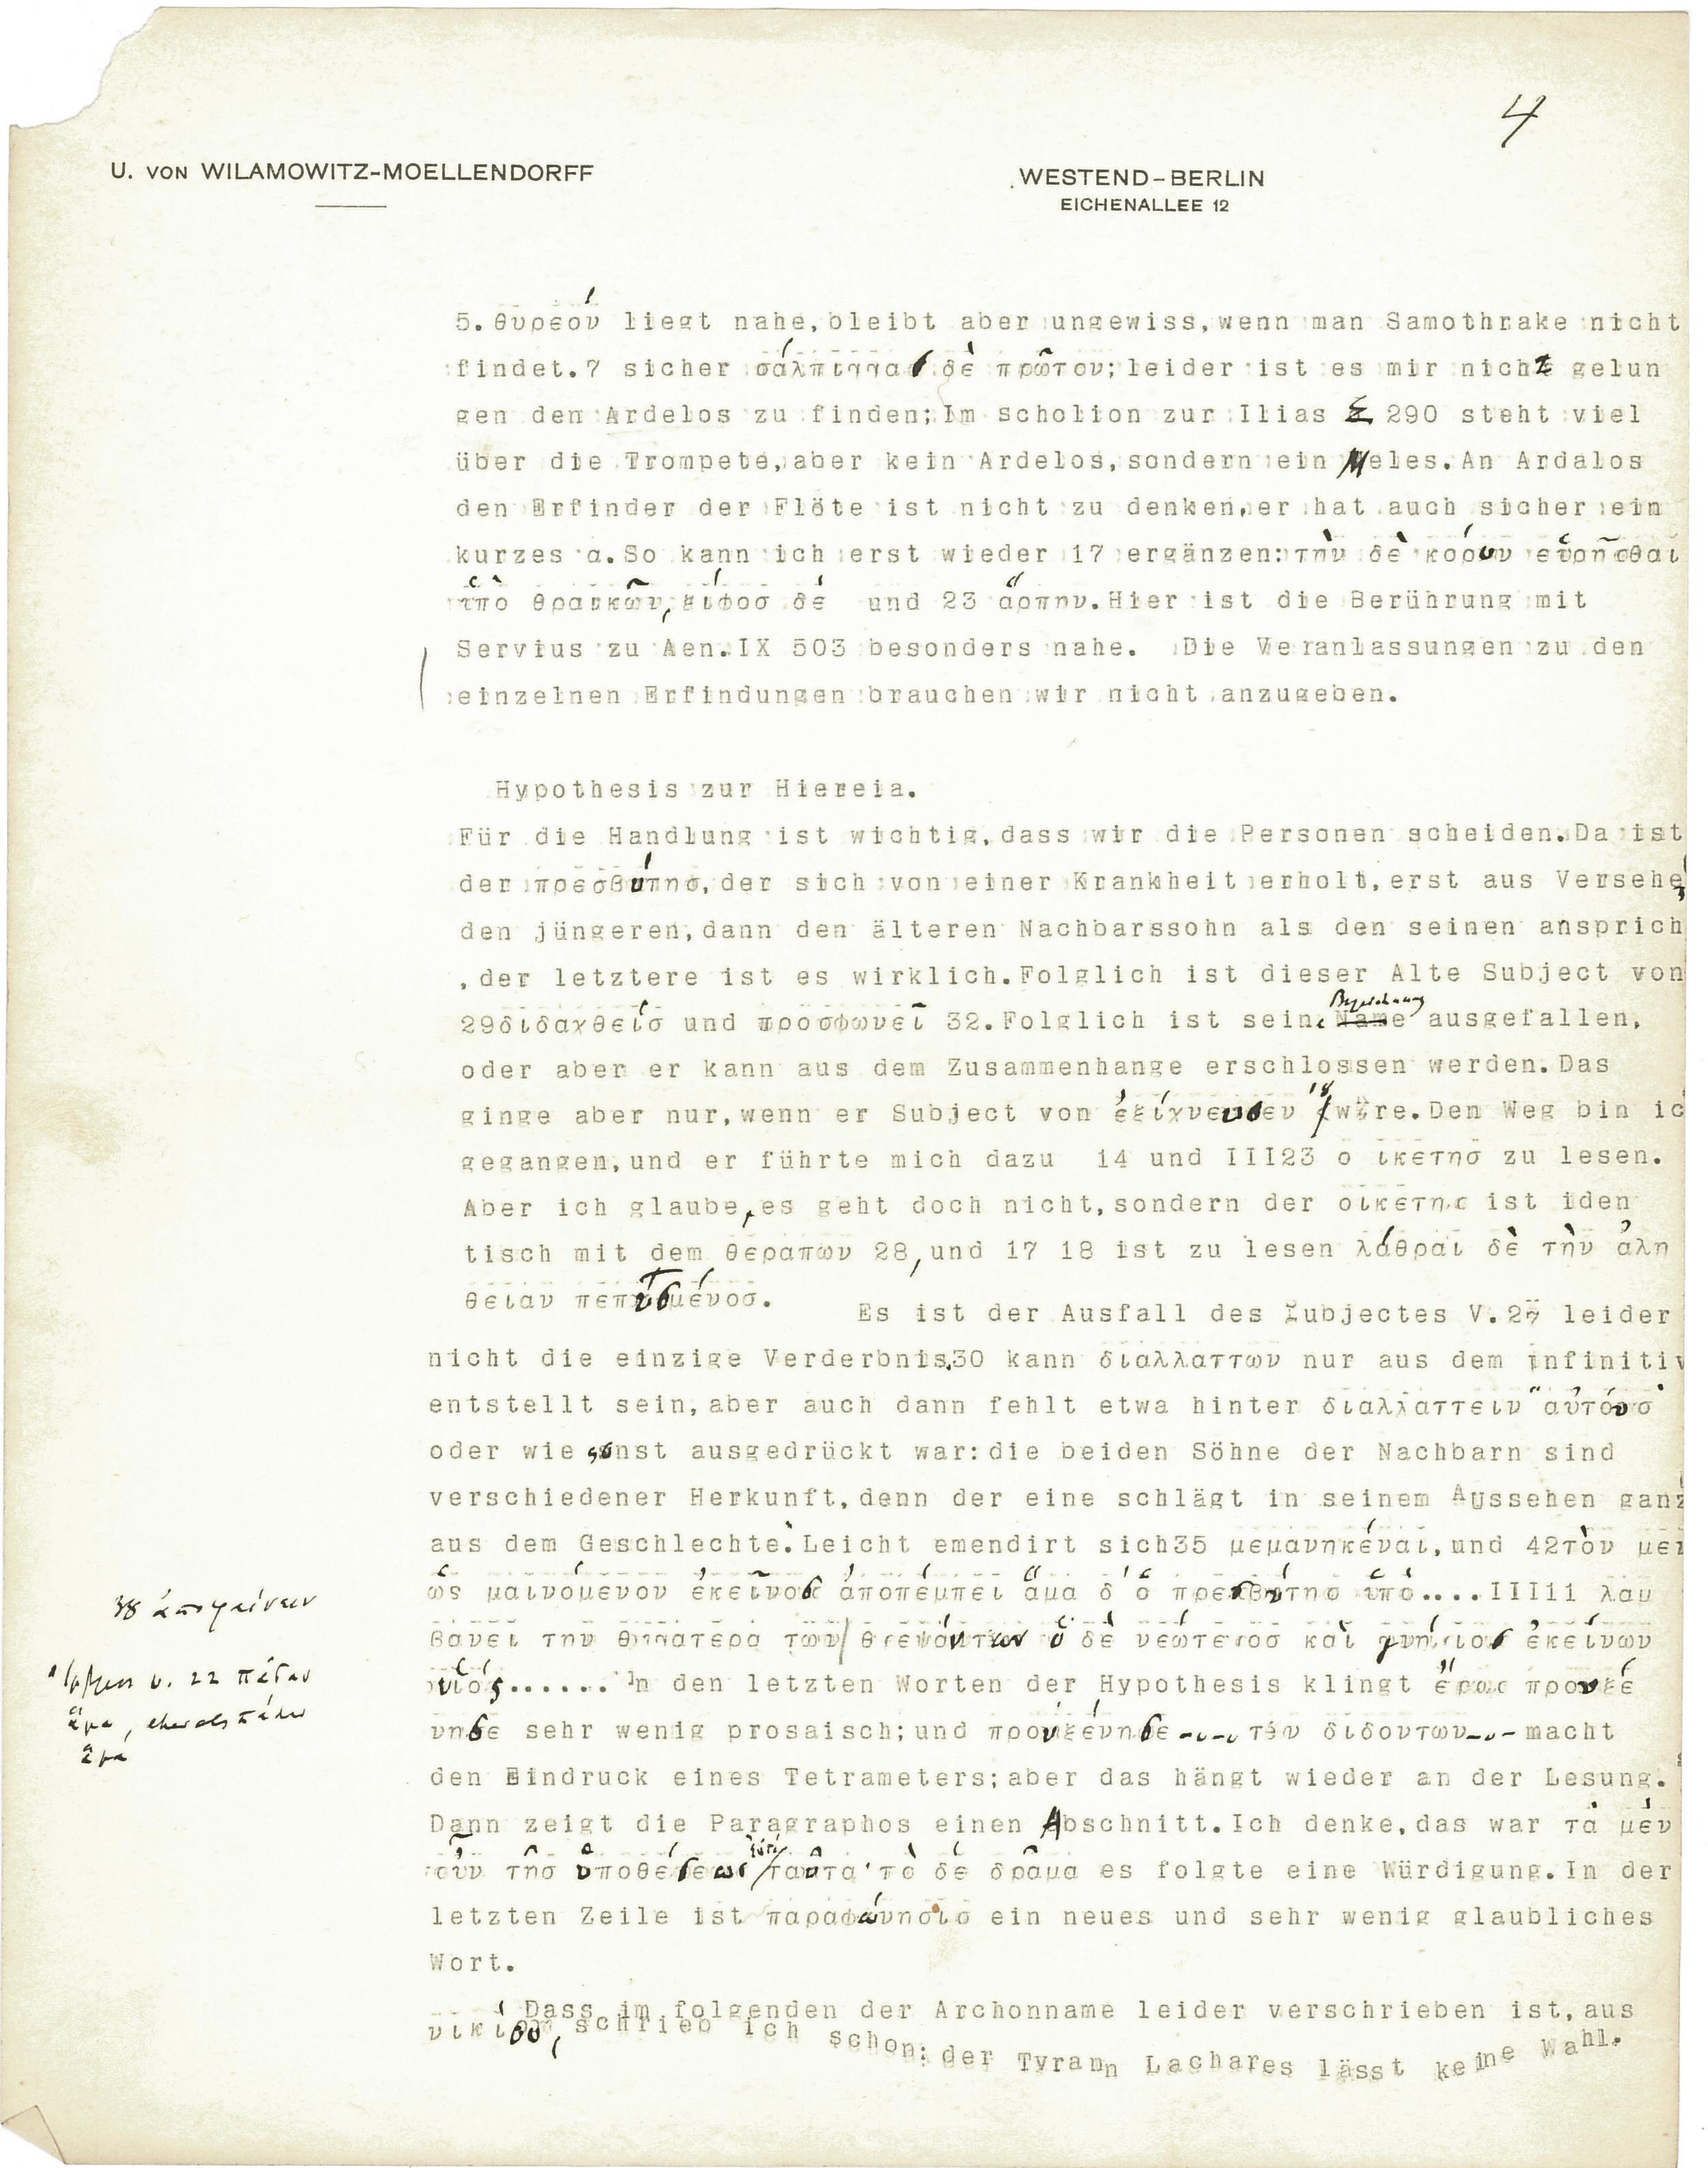 1908-09 A.S. Hunt, letters re papyri from continental scholars DIST.30.17f